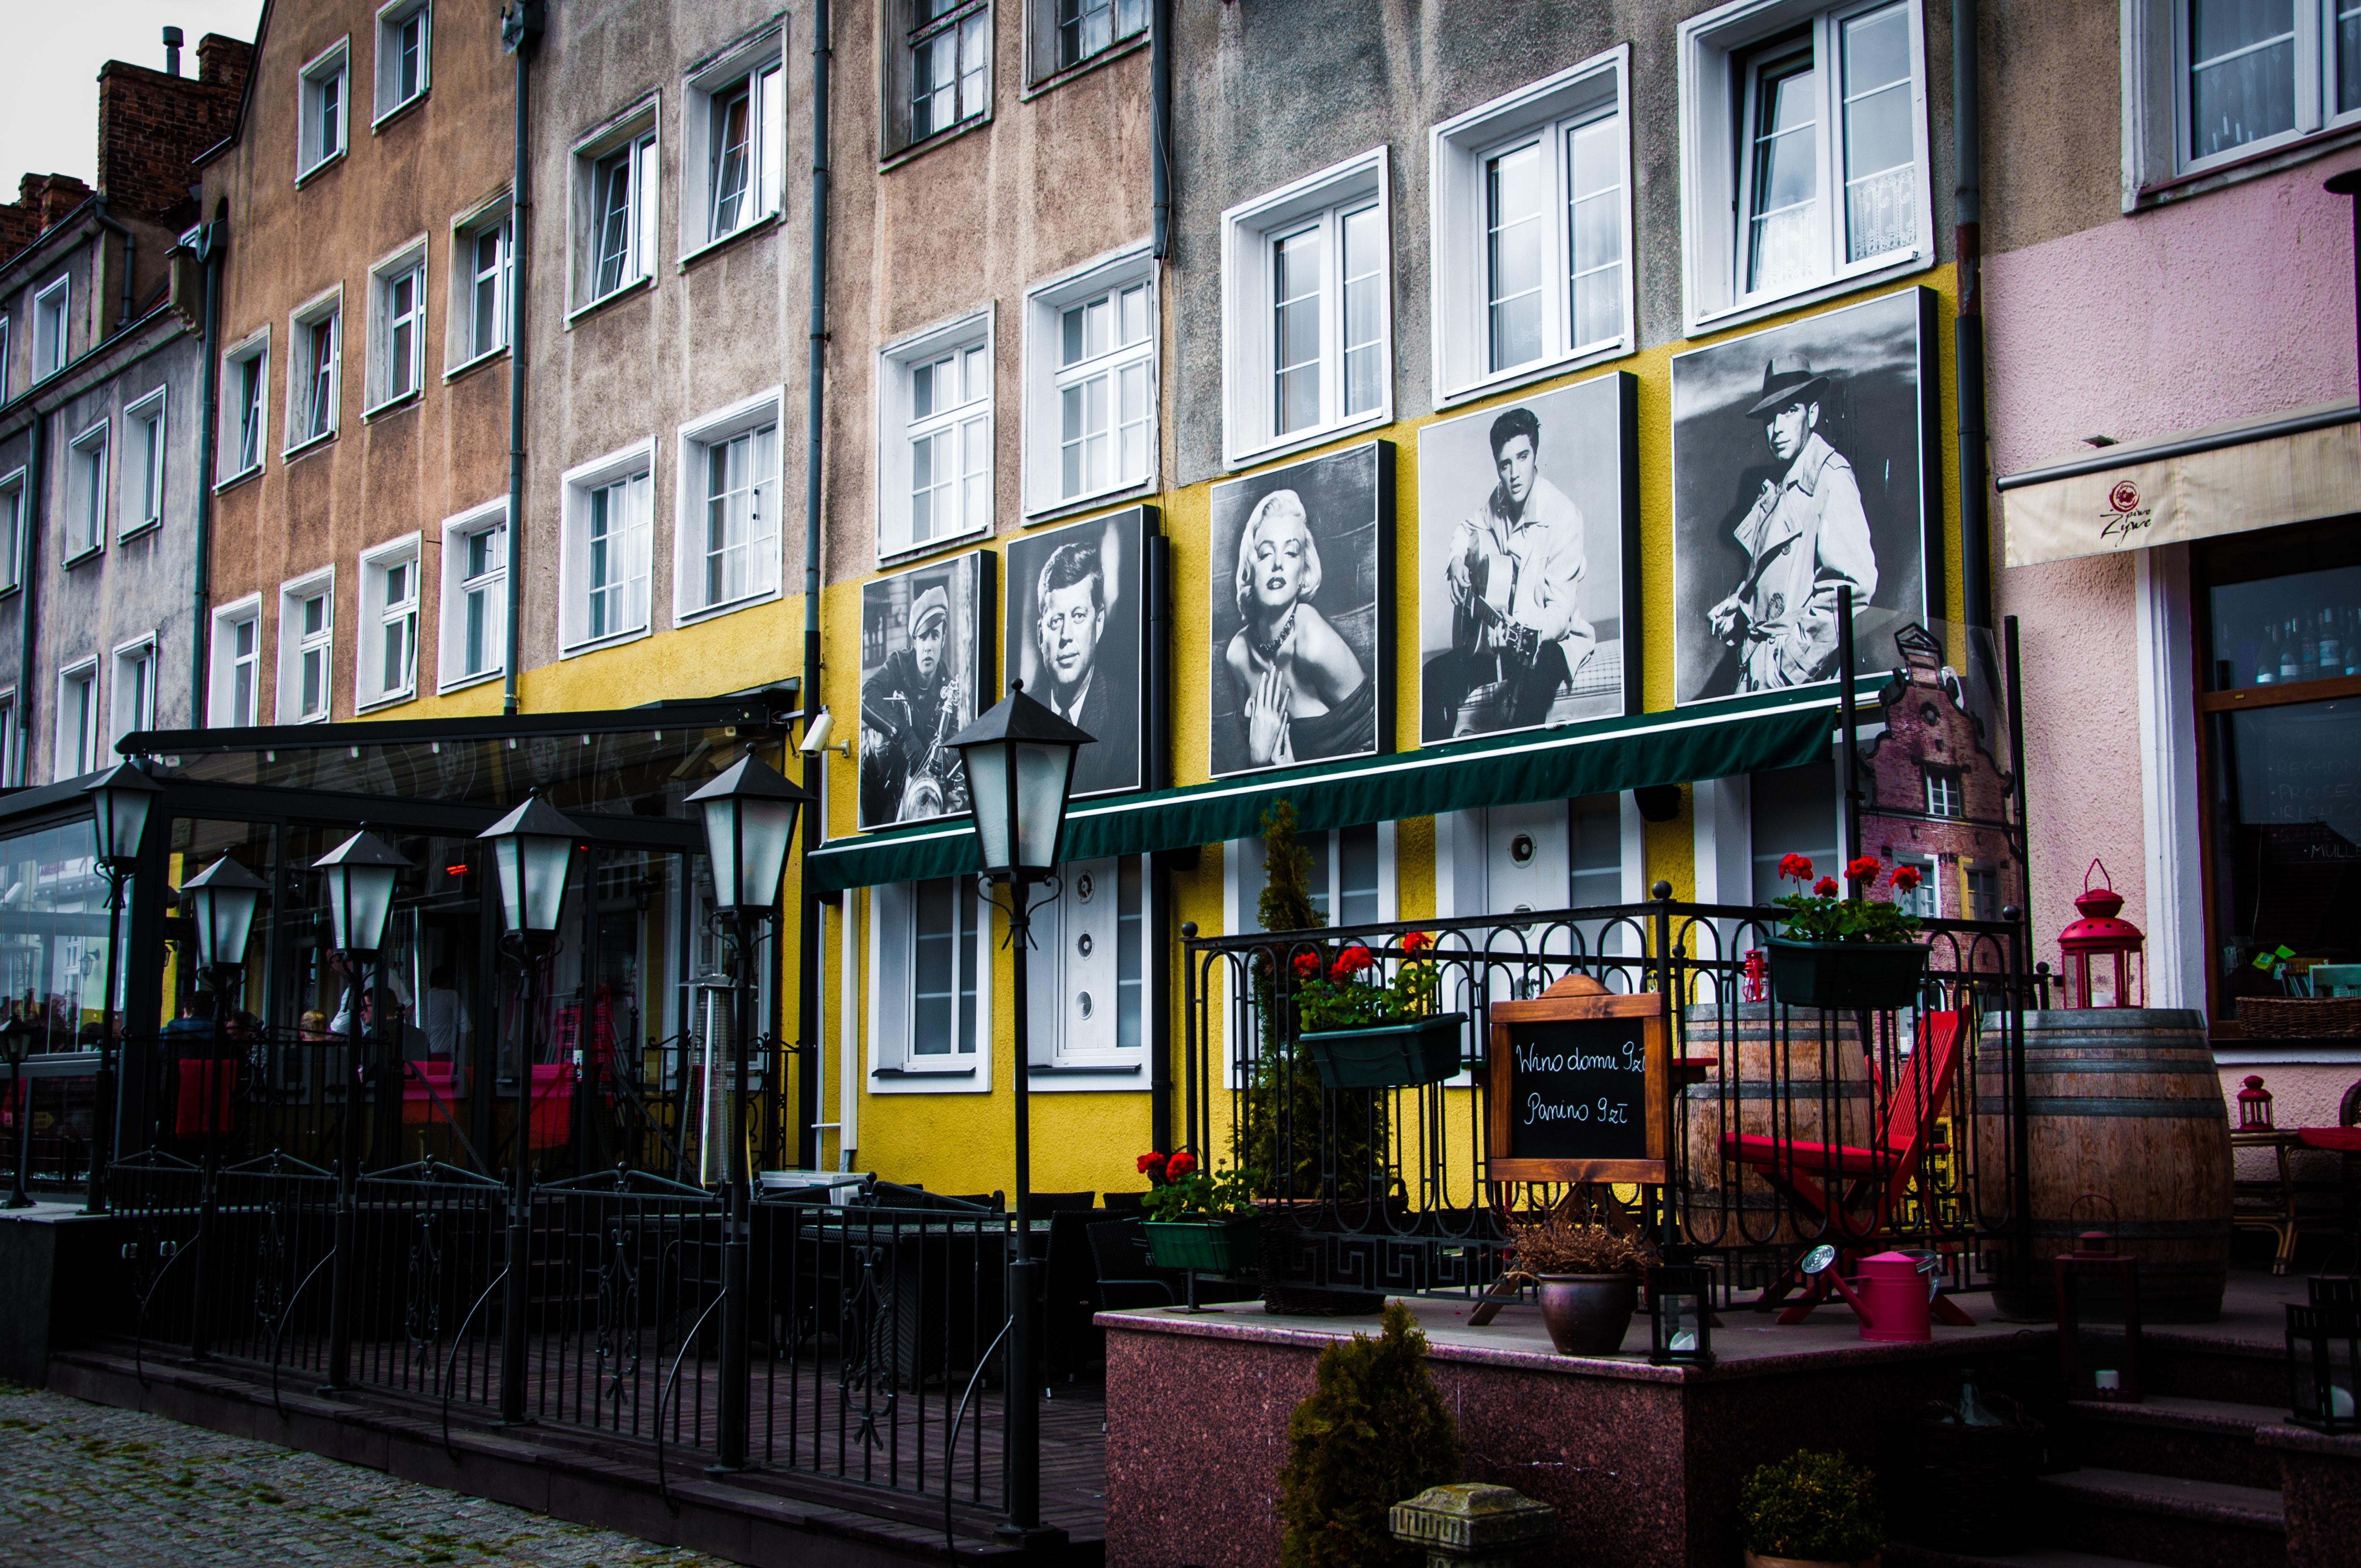 Low Angle View of Marilyn Monroe Frames, Architecture, Urban, Travel, Town, HQ Photo